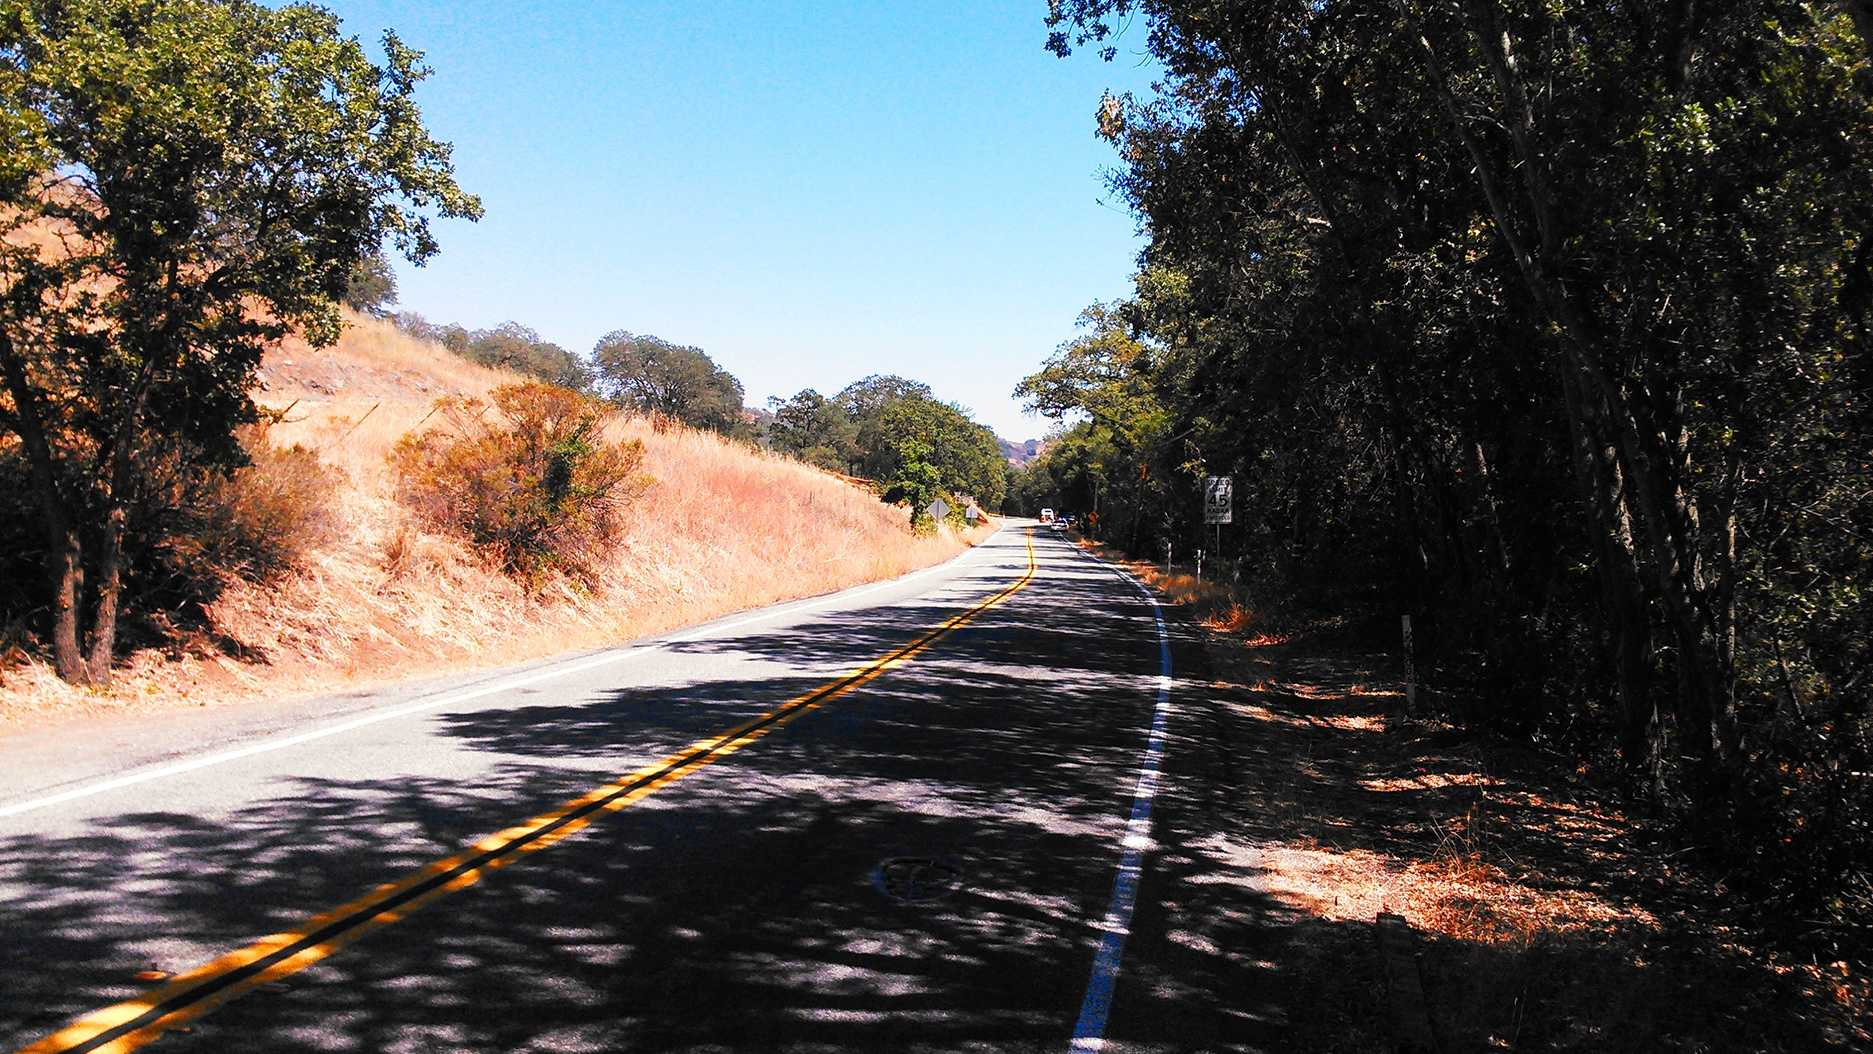 A burned body was found on this road outside Morgan Hill.  (Aug. 28, 2014)